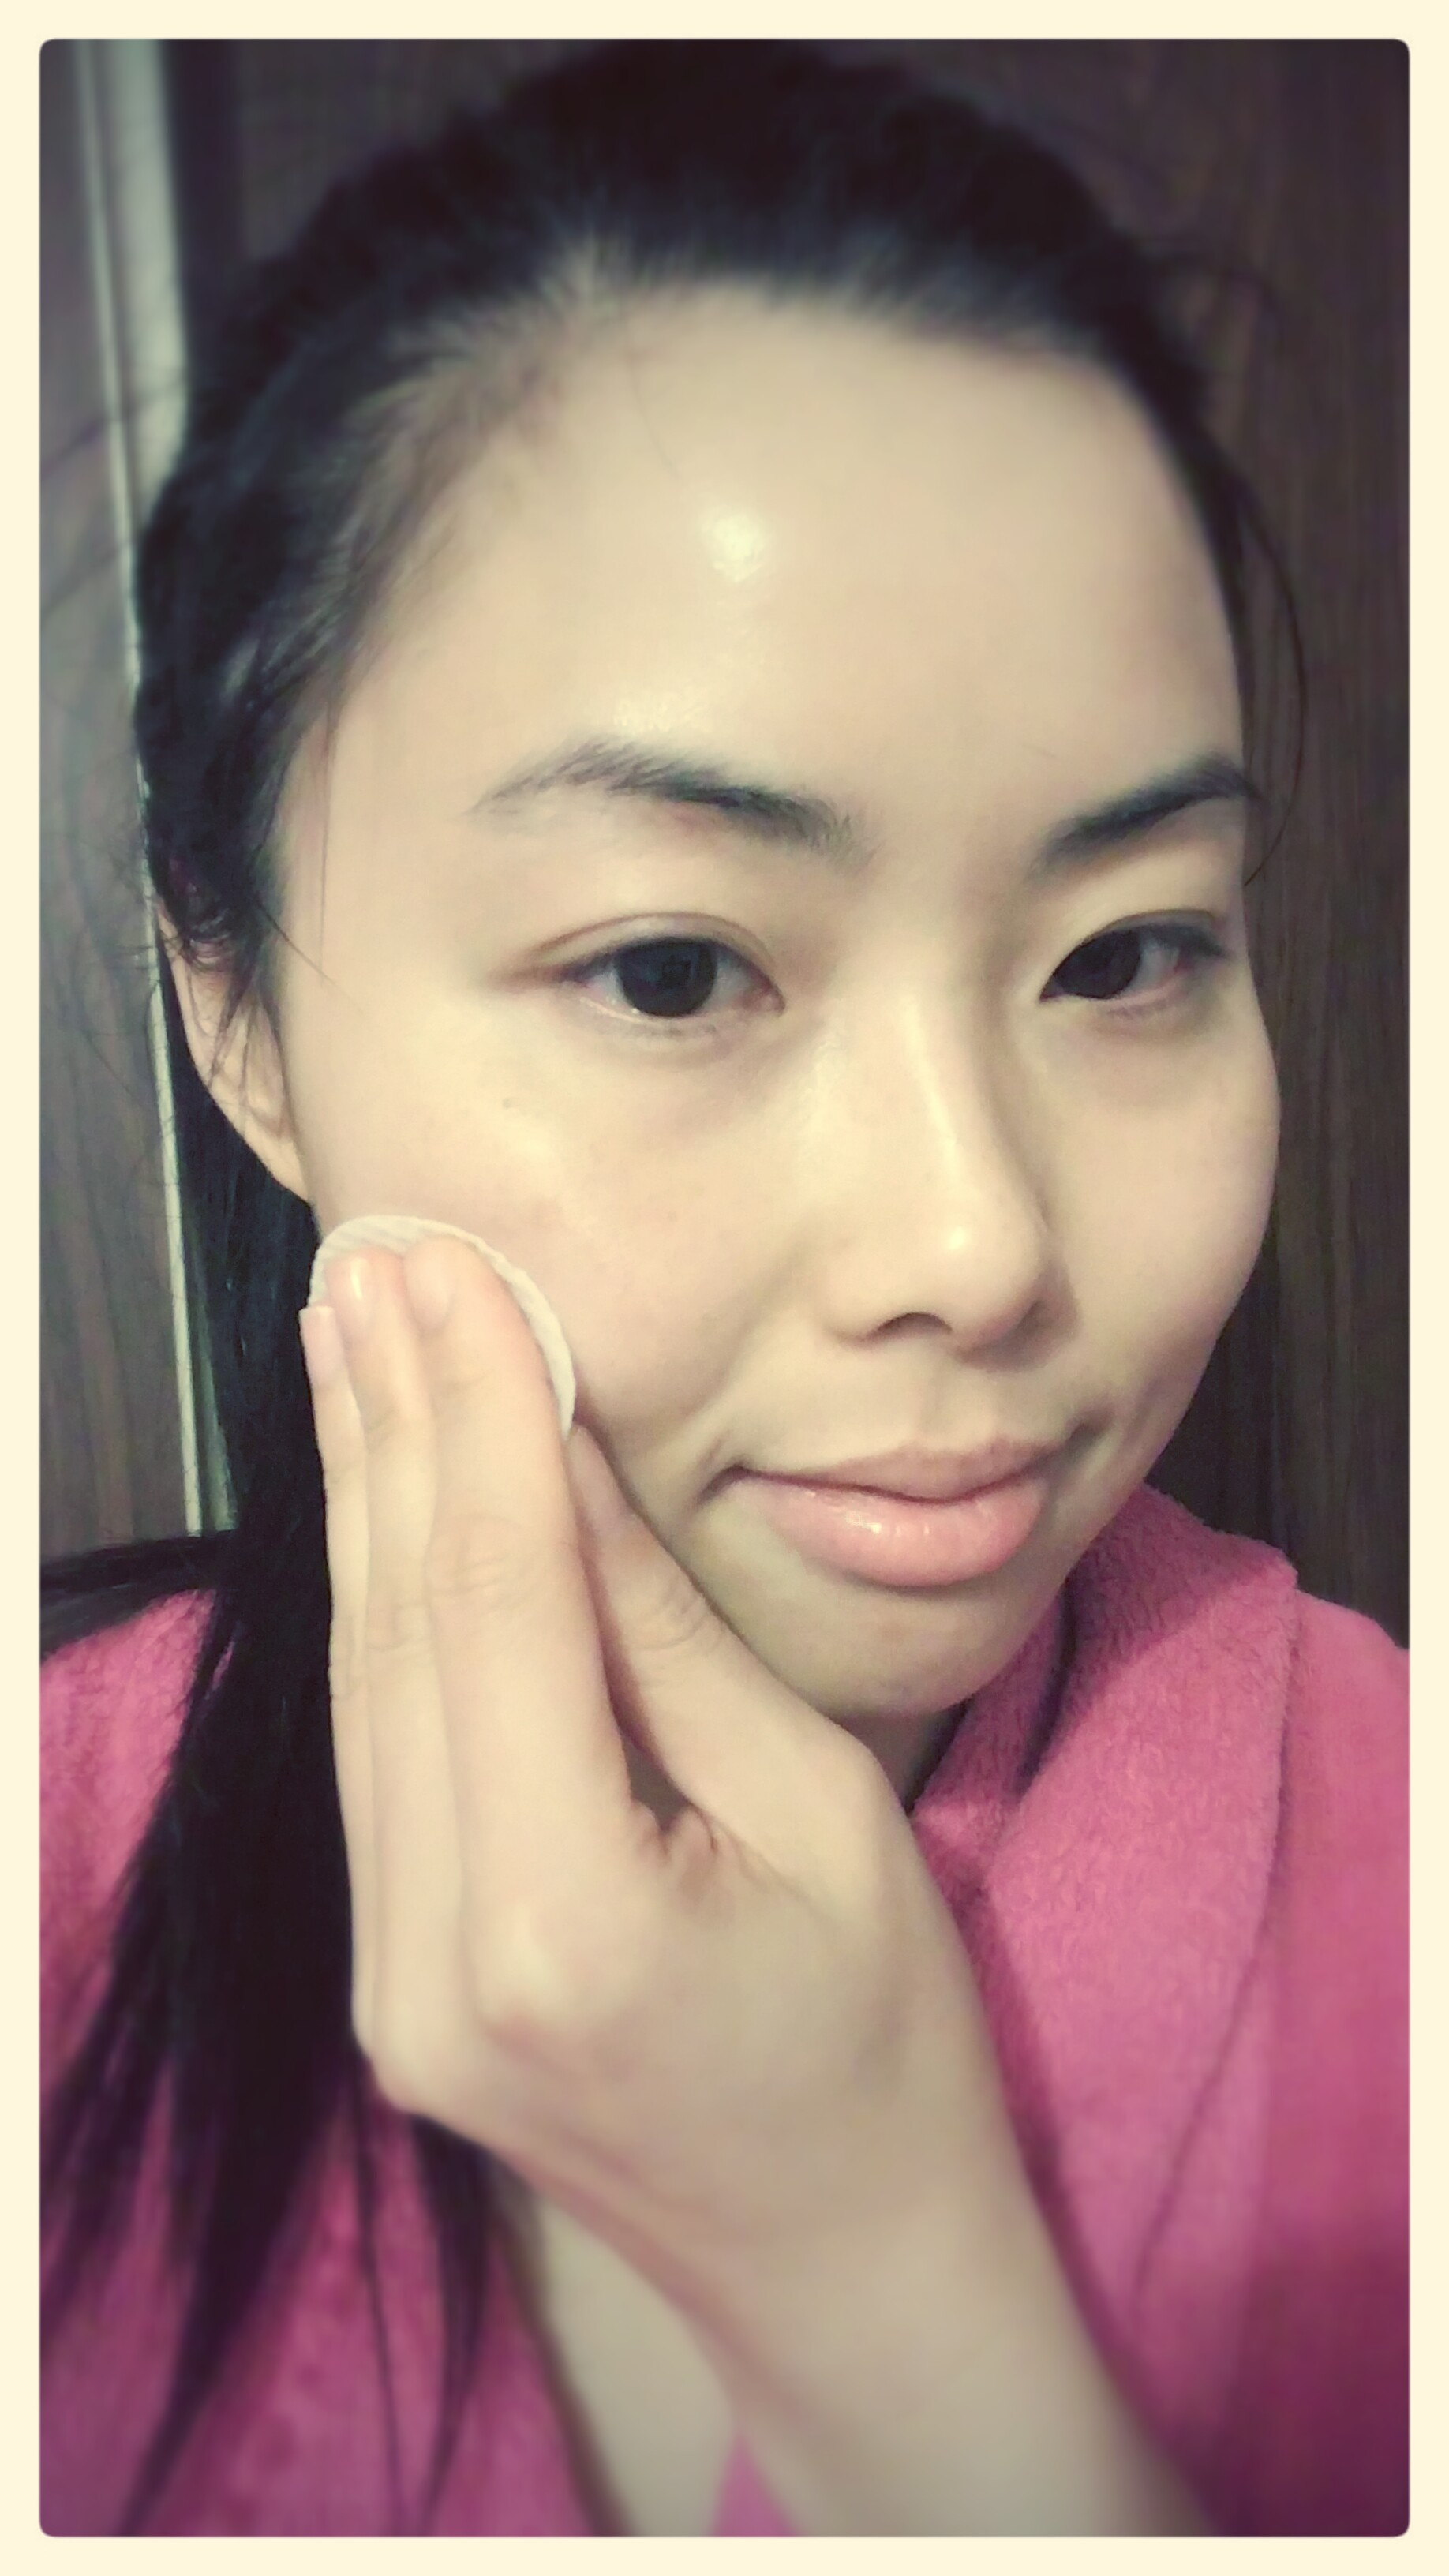 No makeup on, doing the padding motion with The Face Shop's Clean Face Blemish Zero Clarifying Lotion.  Photo taken with LG G4, with Look 10 filter, and frame.